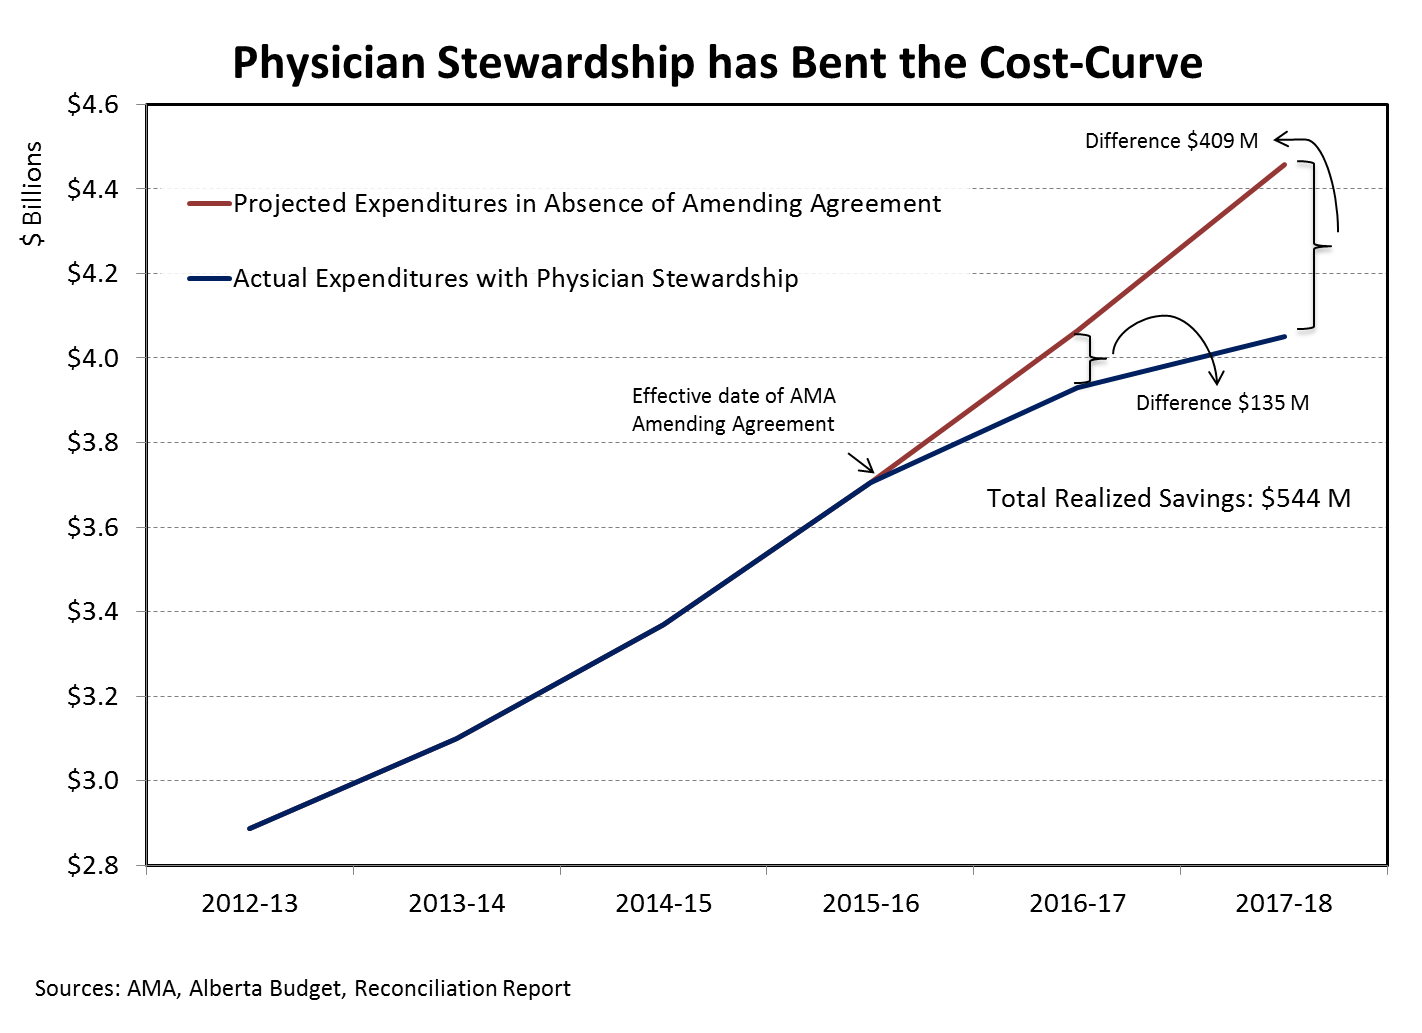 Physician Stewardship has Bent the Cost-curve